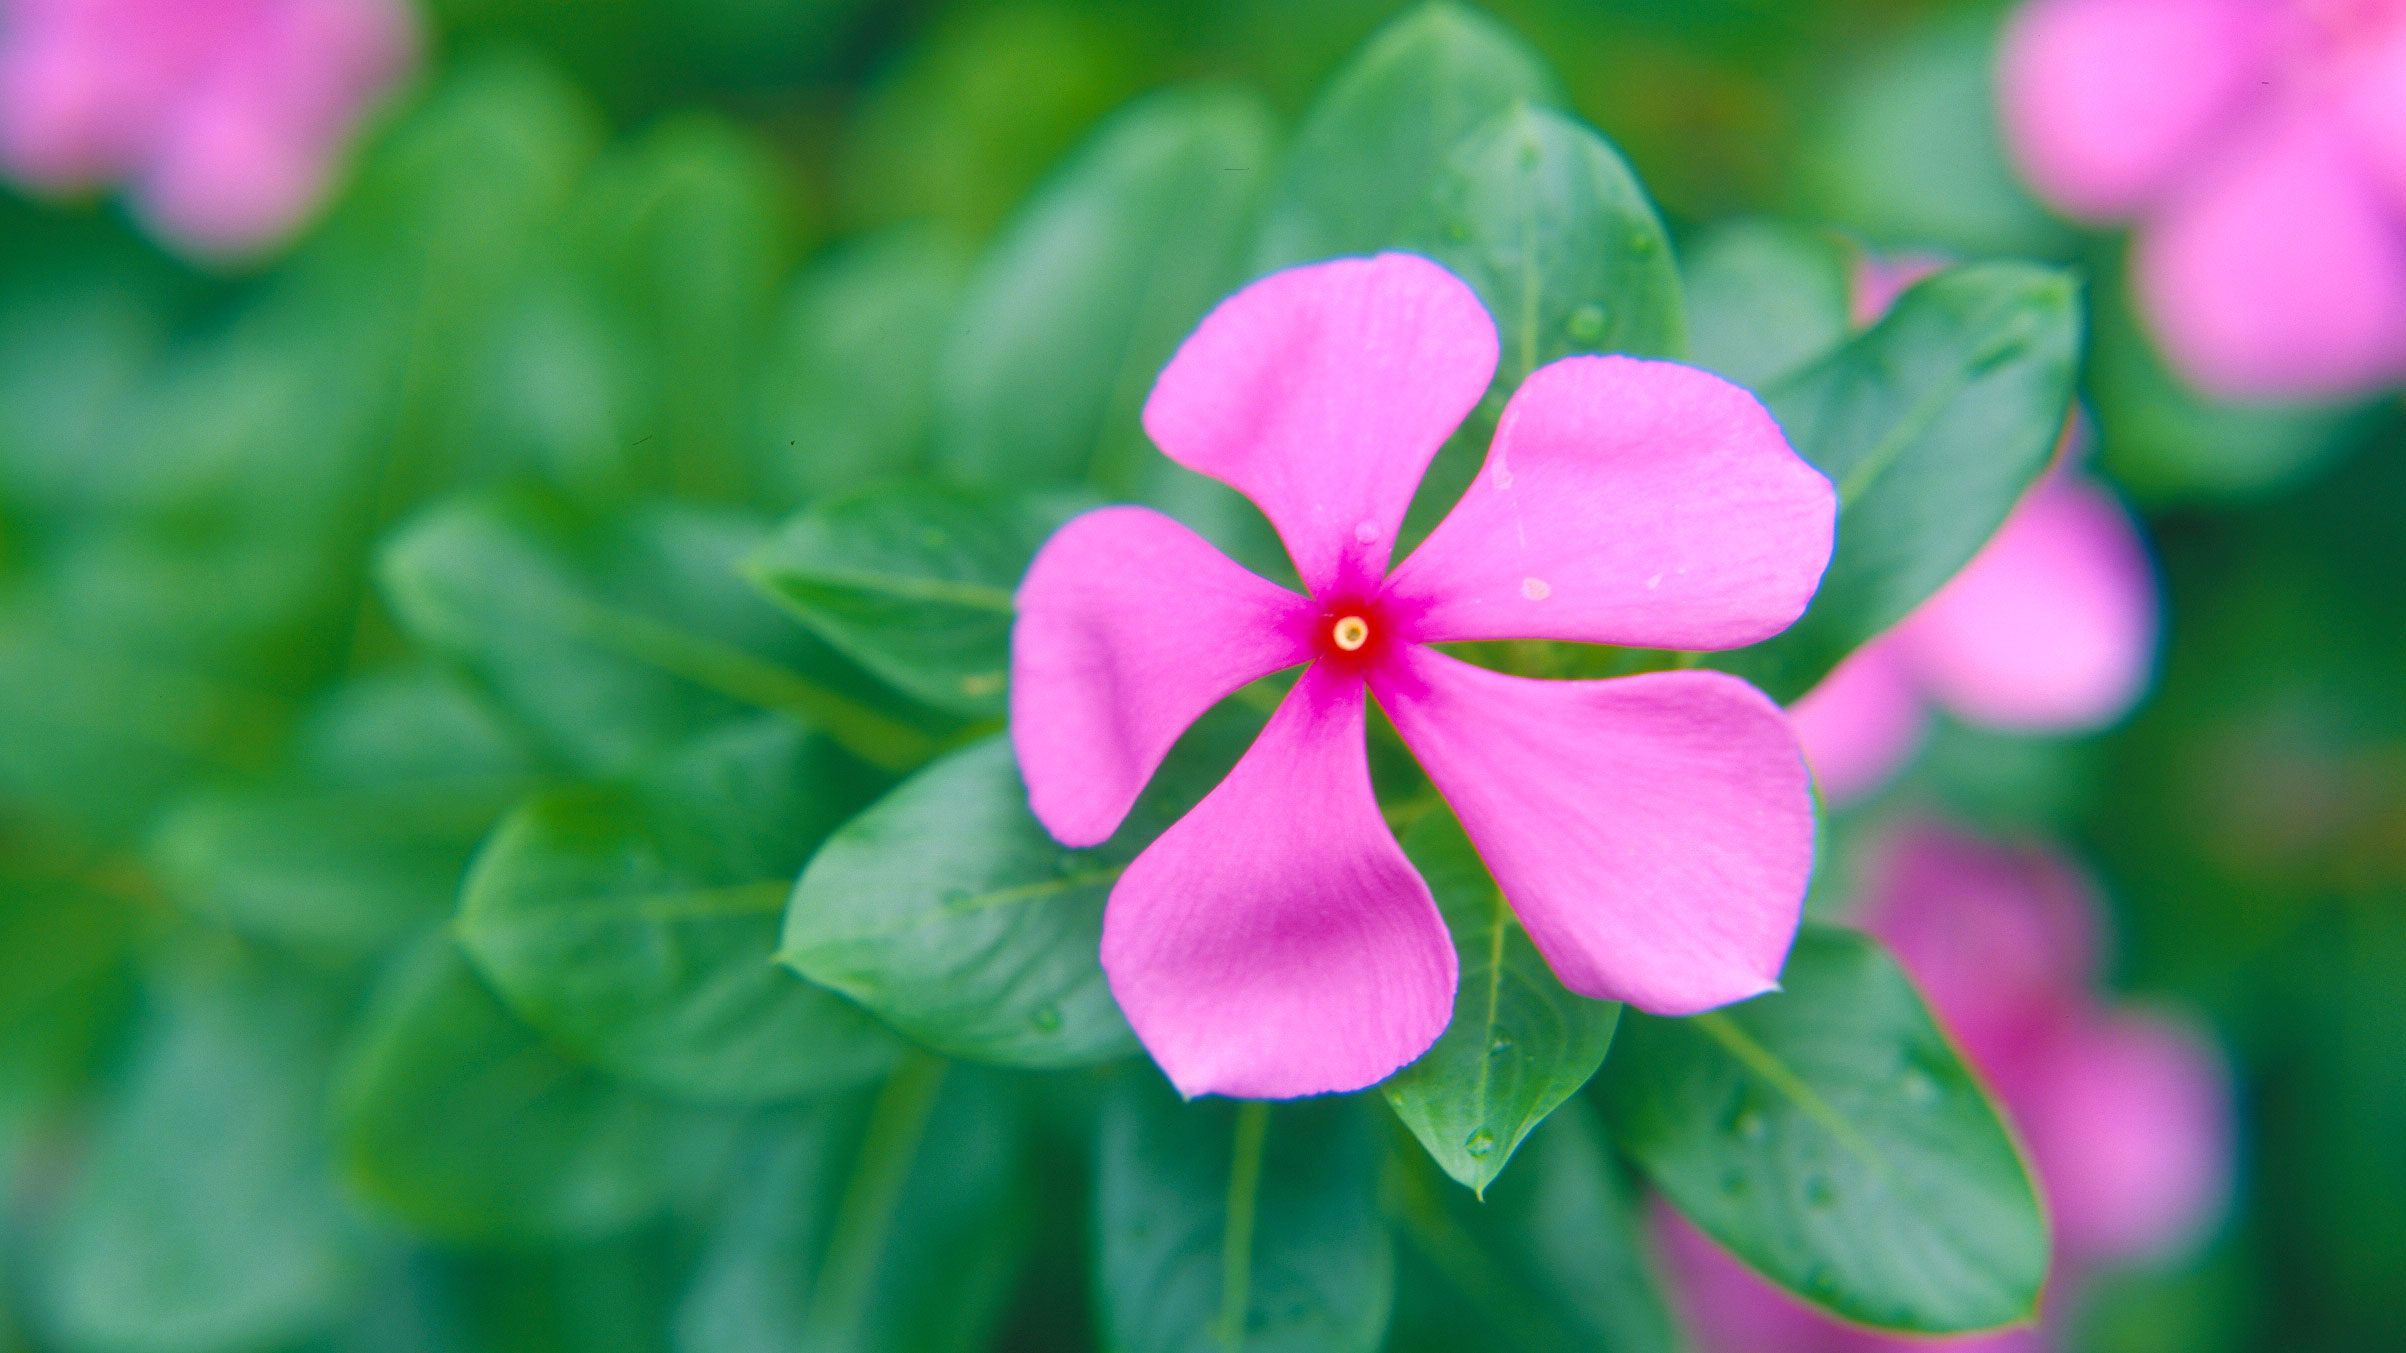 Madagascar periwinkle  (Catharanthus roseus) in the Palm House